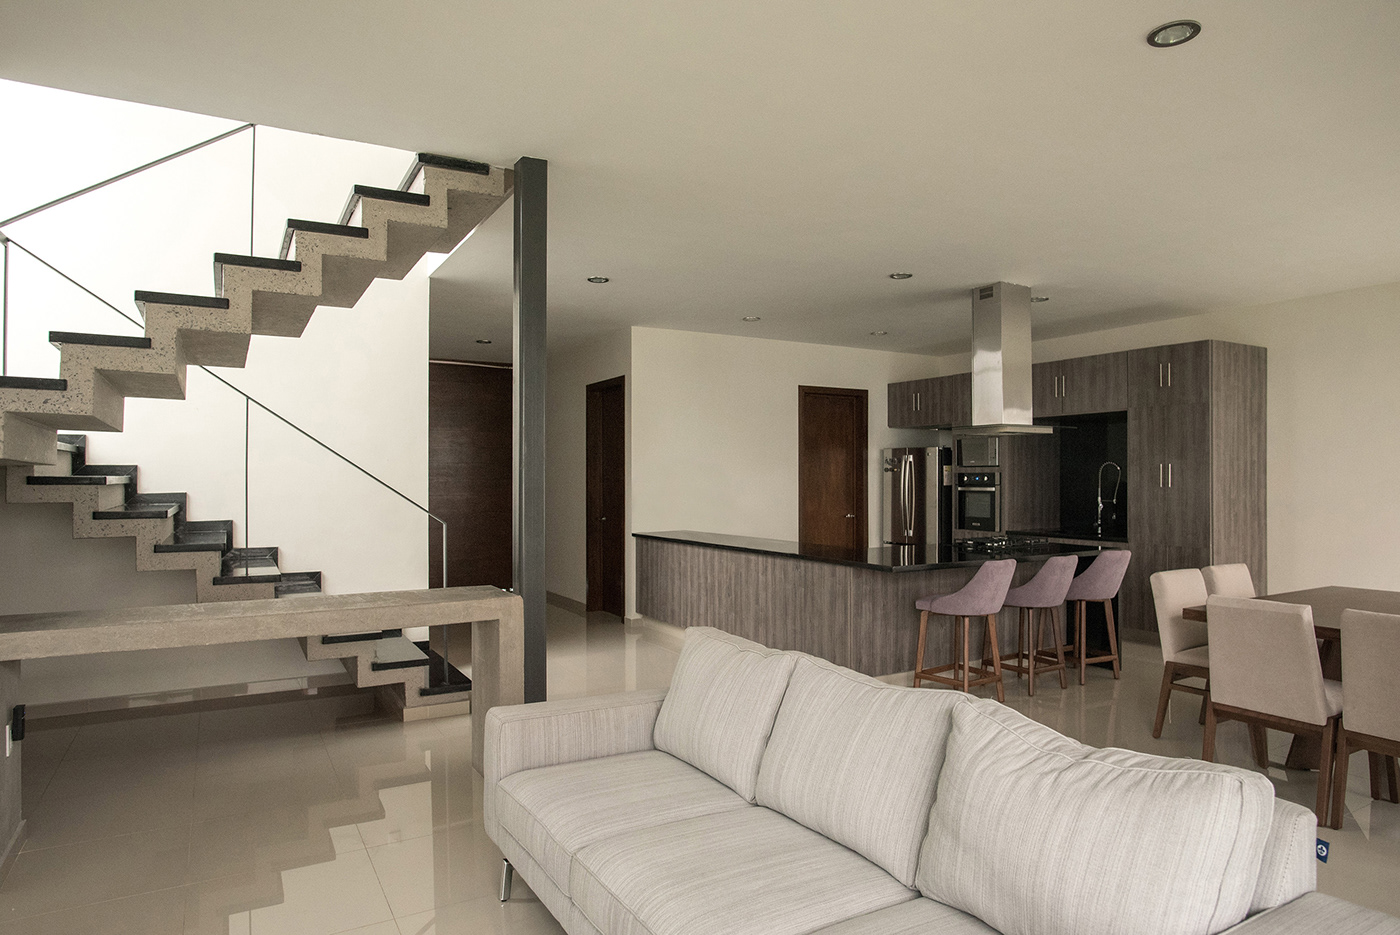 Mexican architecture arquitectura mexicana wood Space  design archilover home